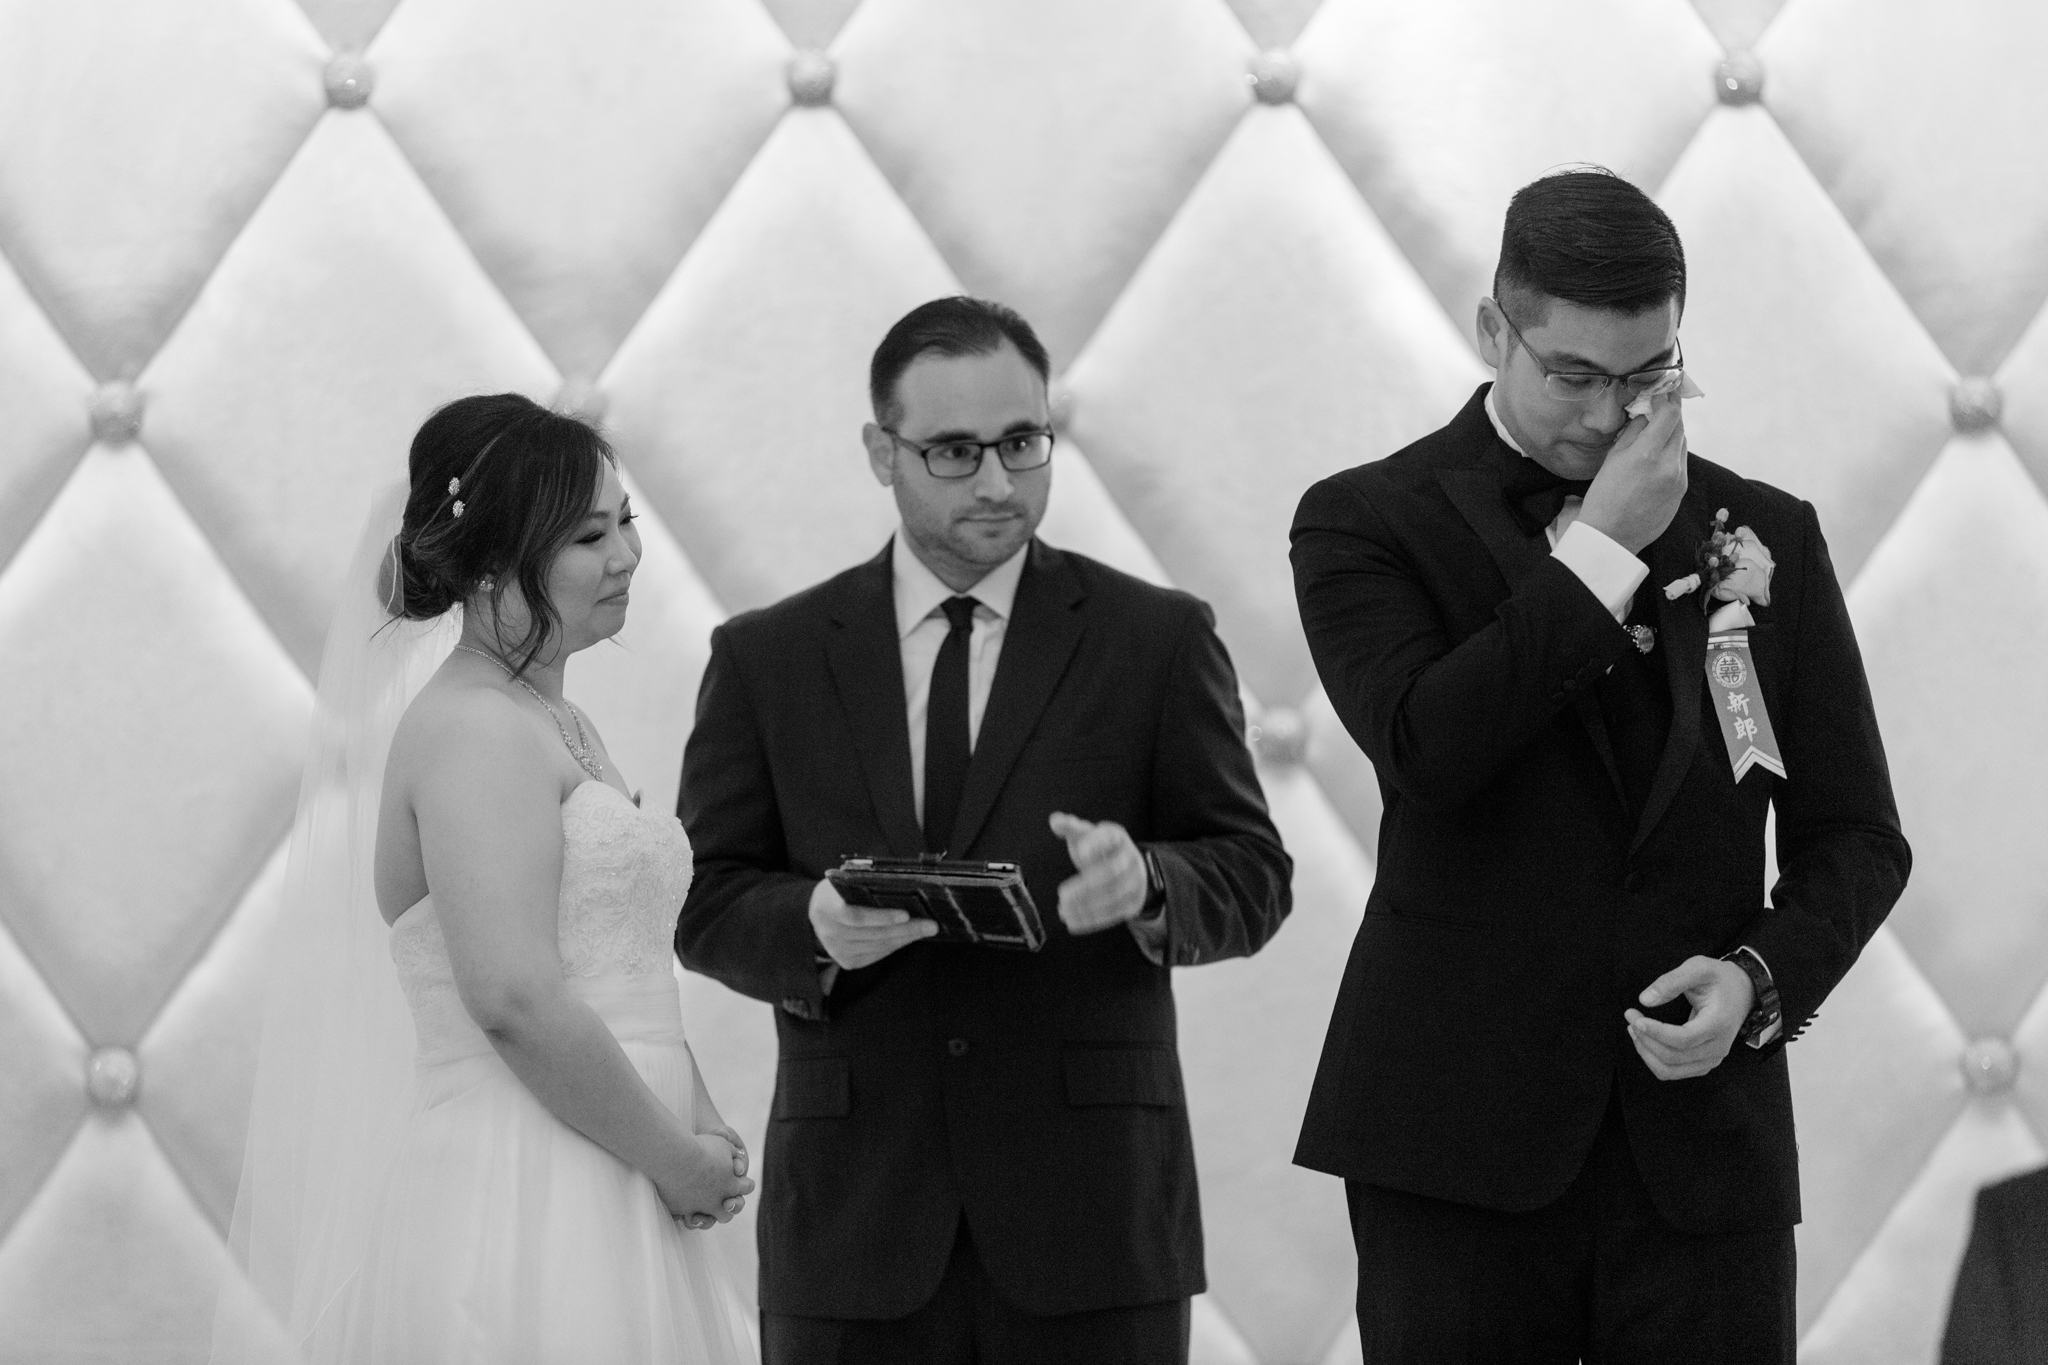 rl-Ceremony-chris+cynthia-91.jpg